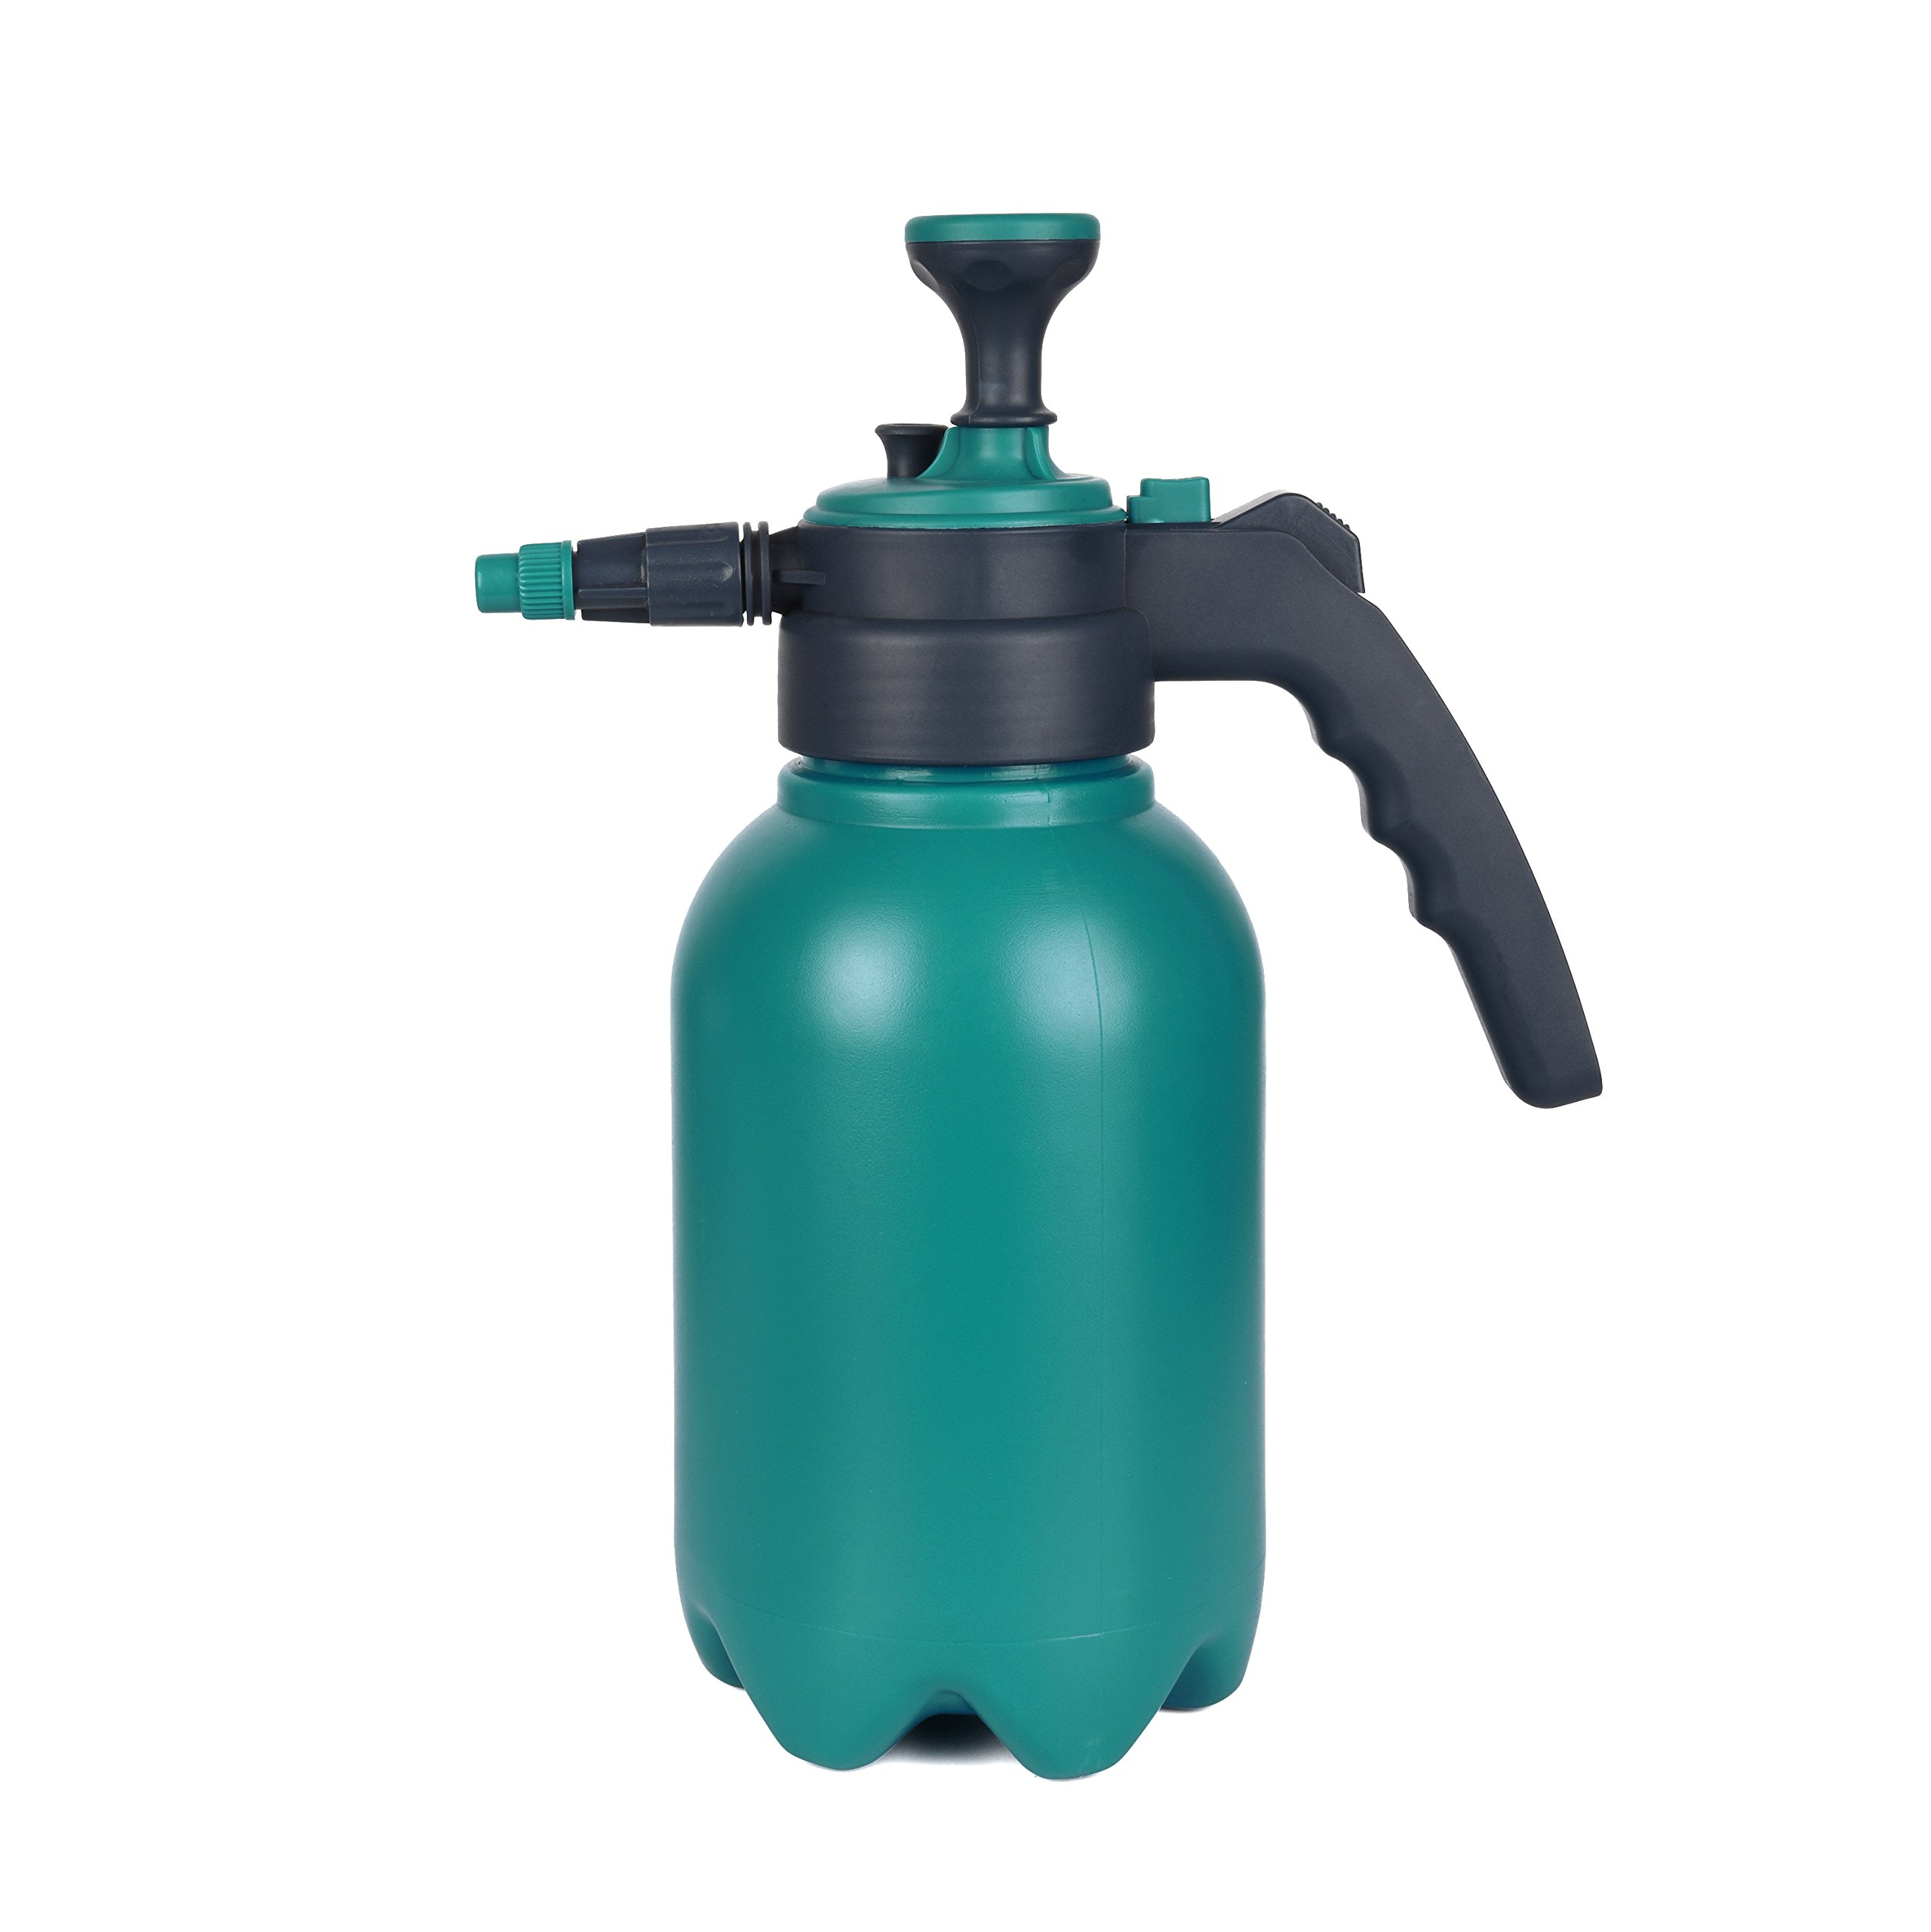 Planted Perfect Hand Garden Sprayer - 2L Handheld Pressure Sprayers Sprays Water, Chemicals, Pesticides, Neem Oil and Weeds - Perfect Lightweight Water Mister, Lawn Sprayer Combo - EBOOK BUNDLE (2L) by Planted Perfect